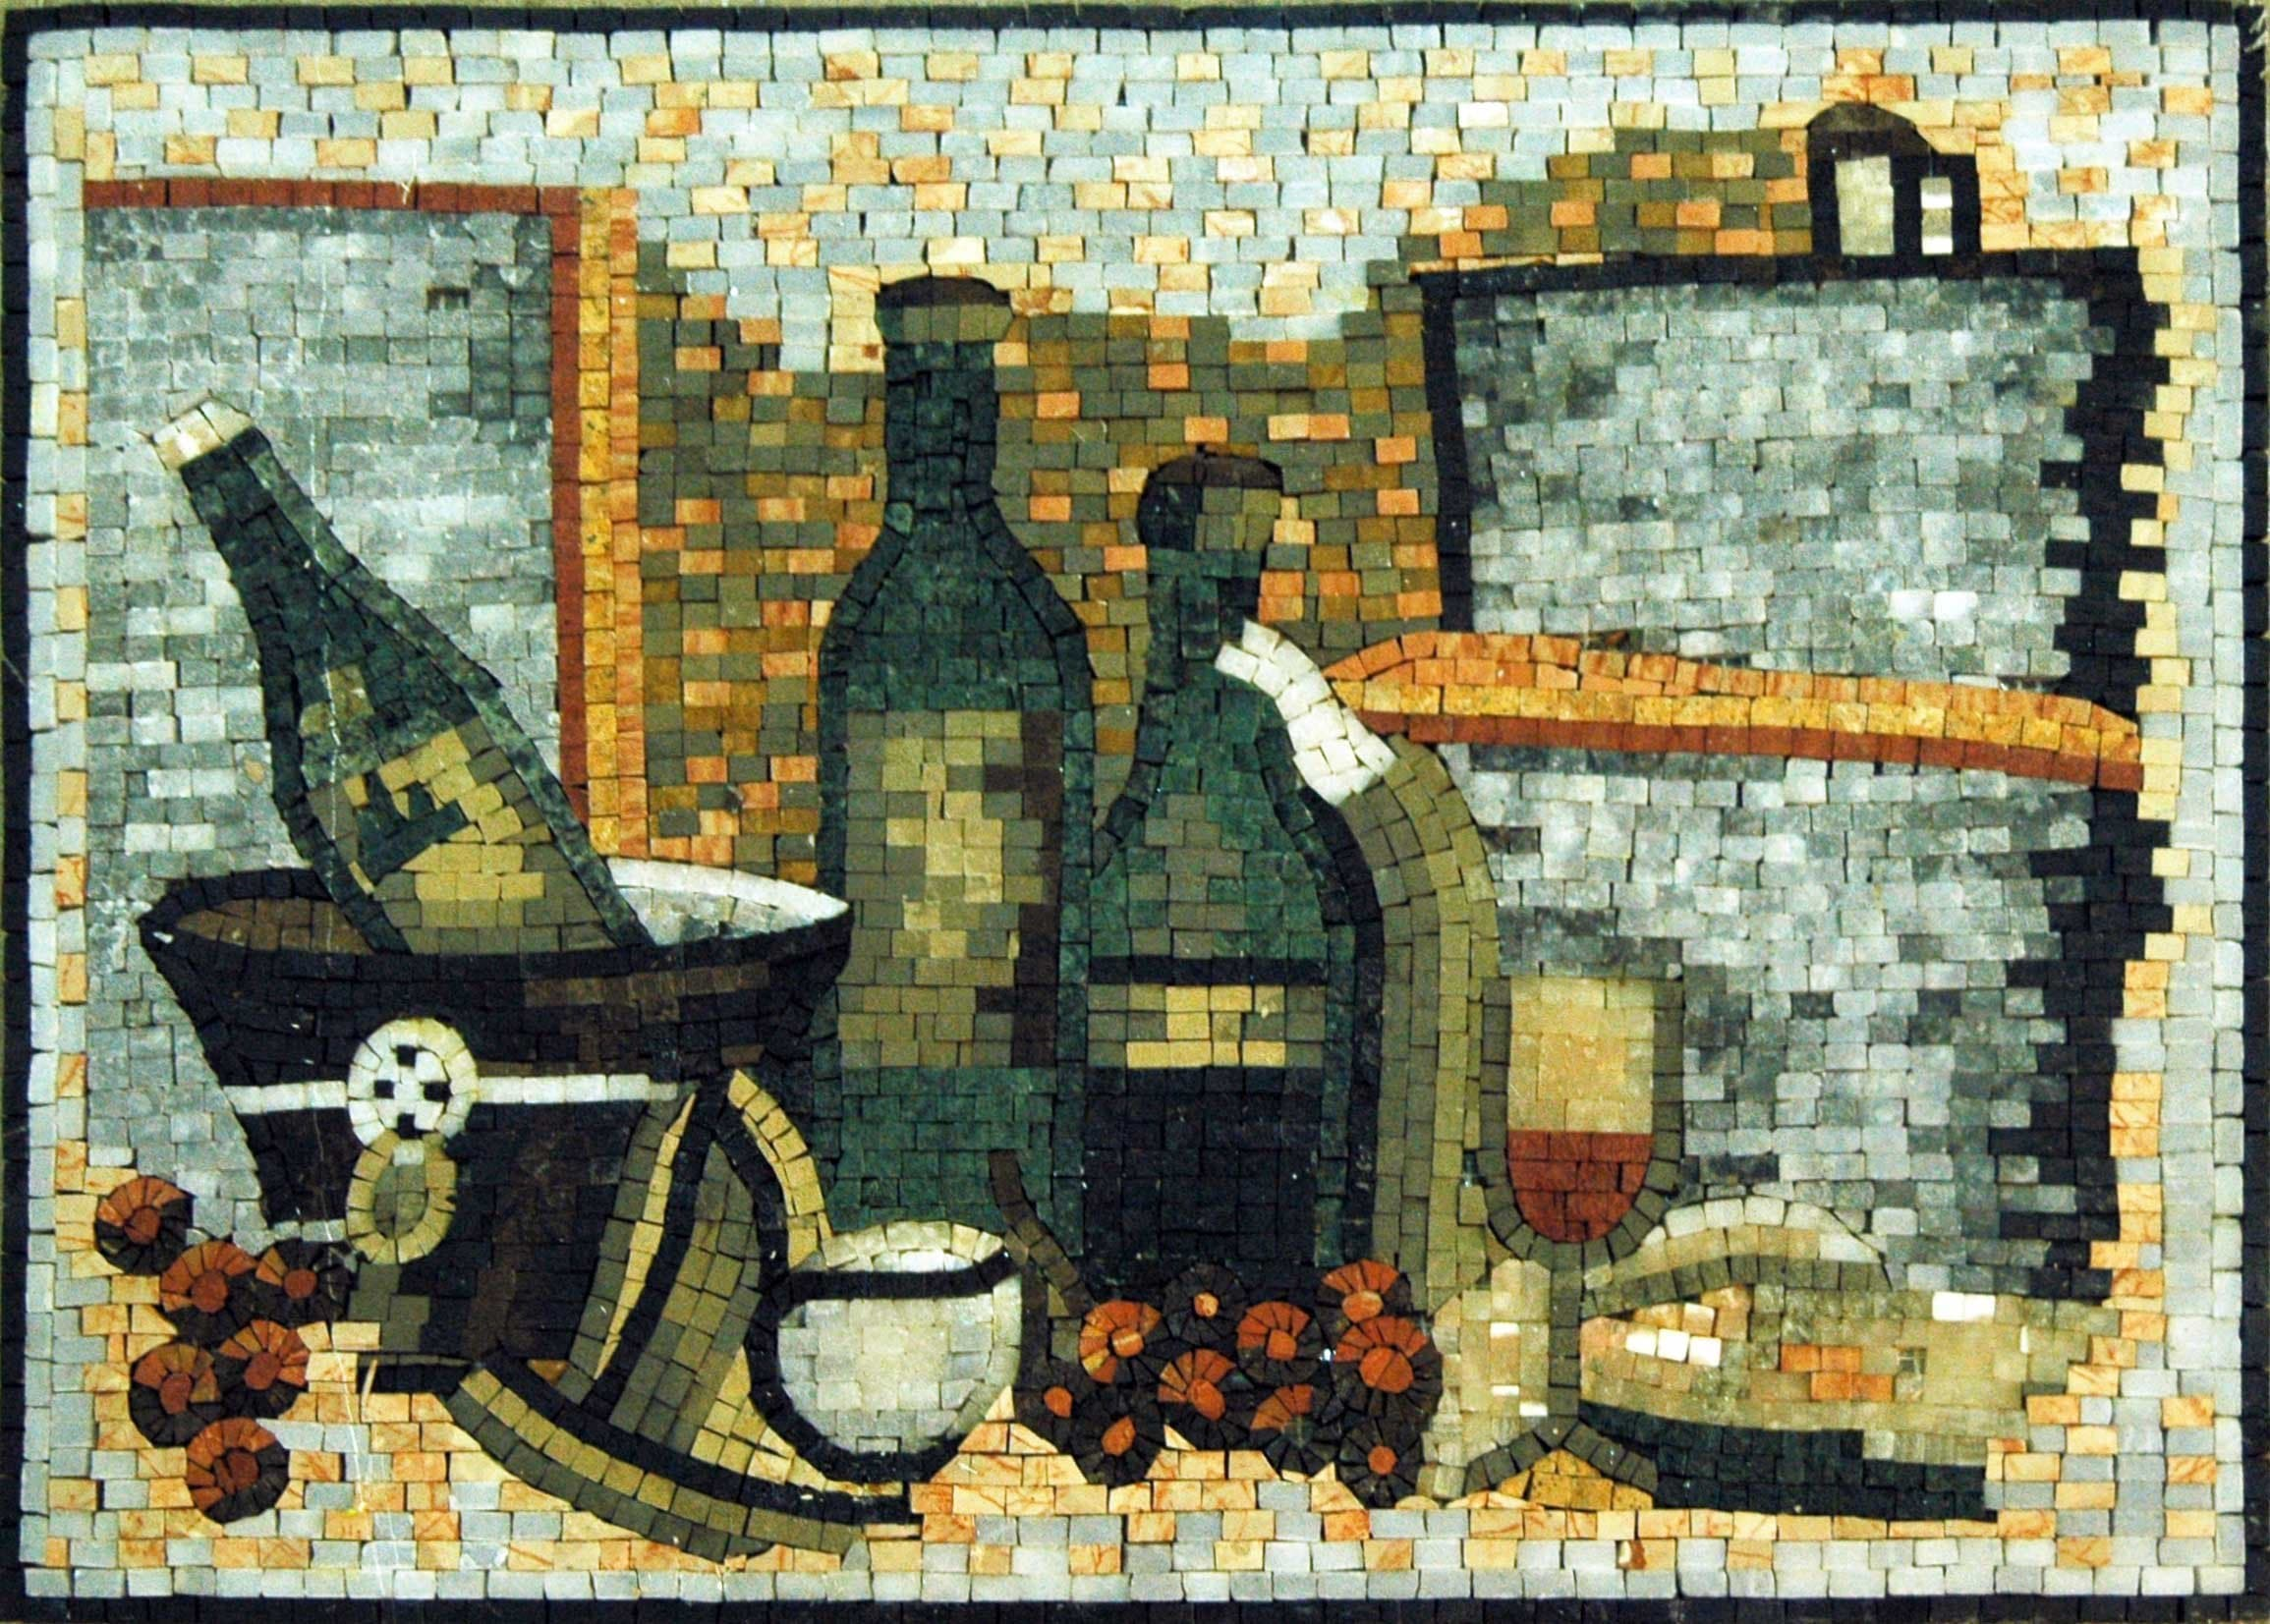 Mosaic Art For Sale- Wine Bottles